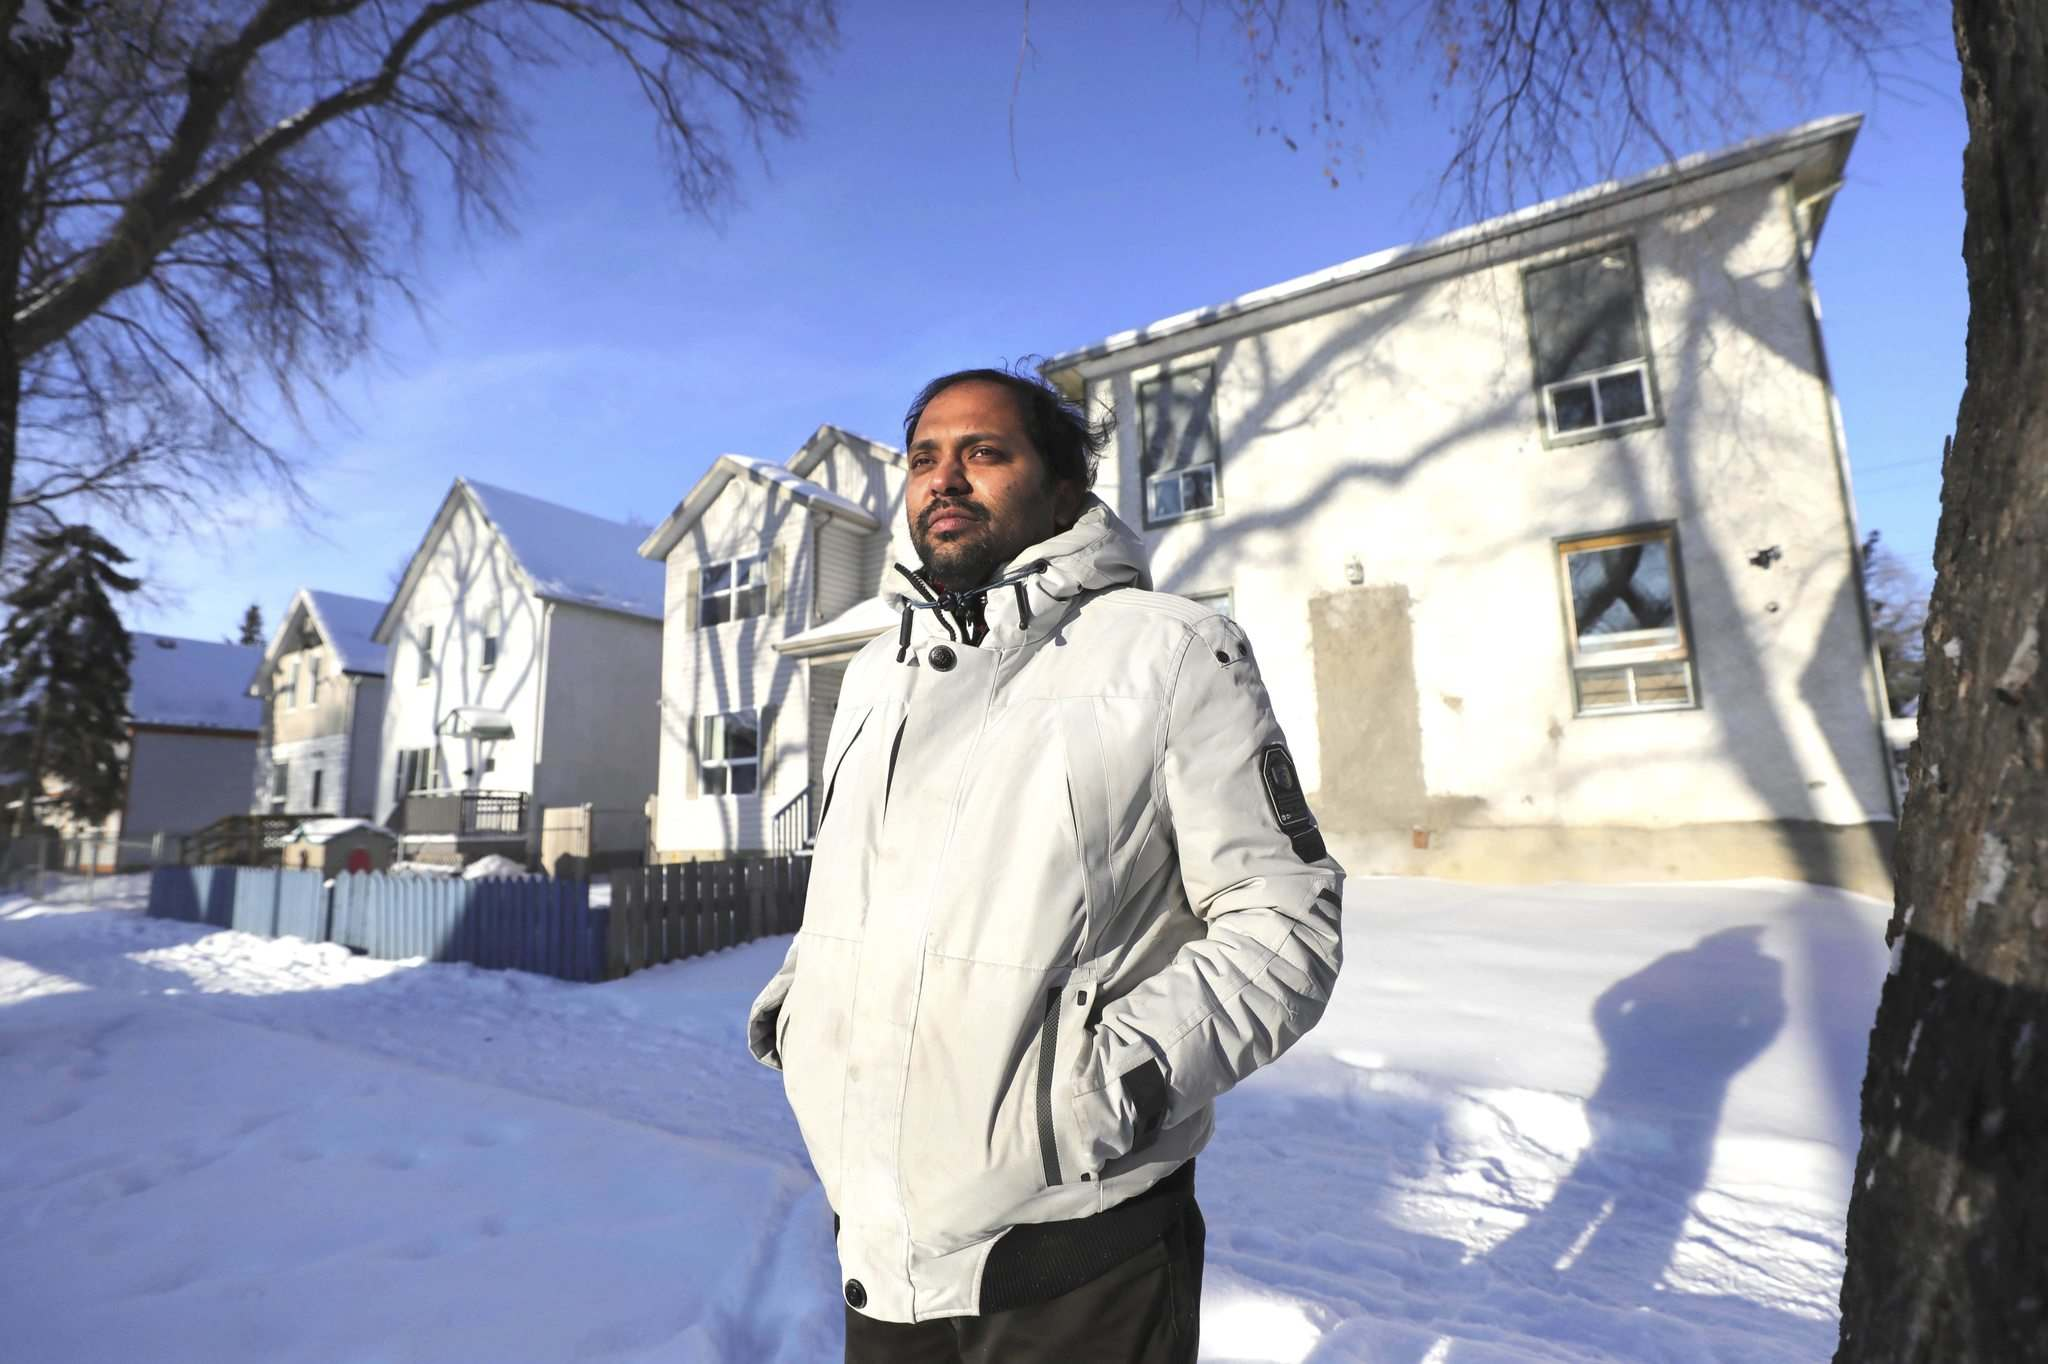 """The problem is still there. It's not over. I am not in a position to do any work there. I am, myself, afraid to go there,"" Jose Pothokkaran said. (Ruth Bonneville / Winnipeg Free Press)"